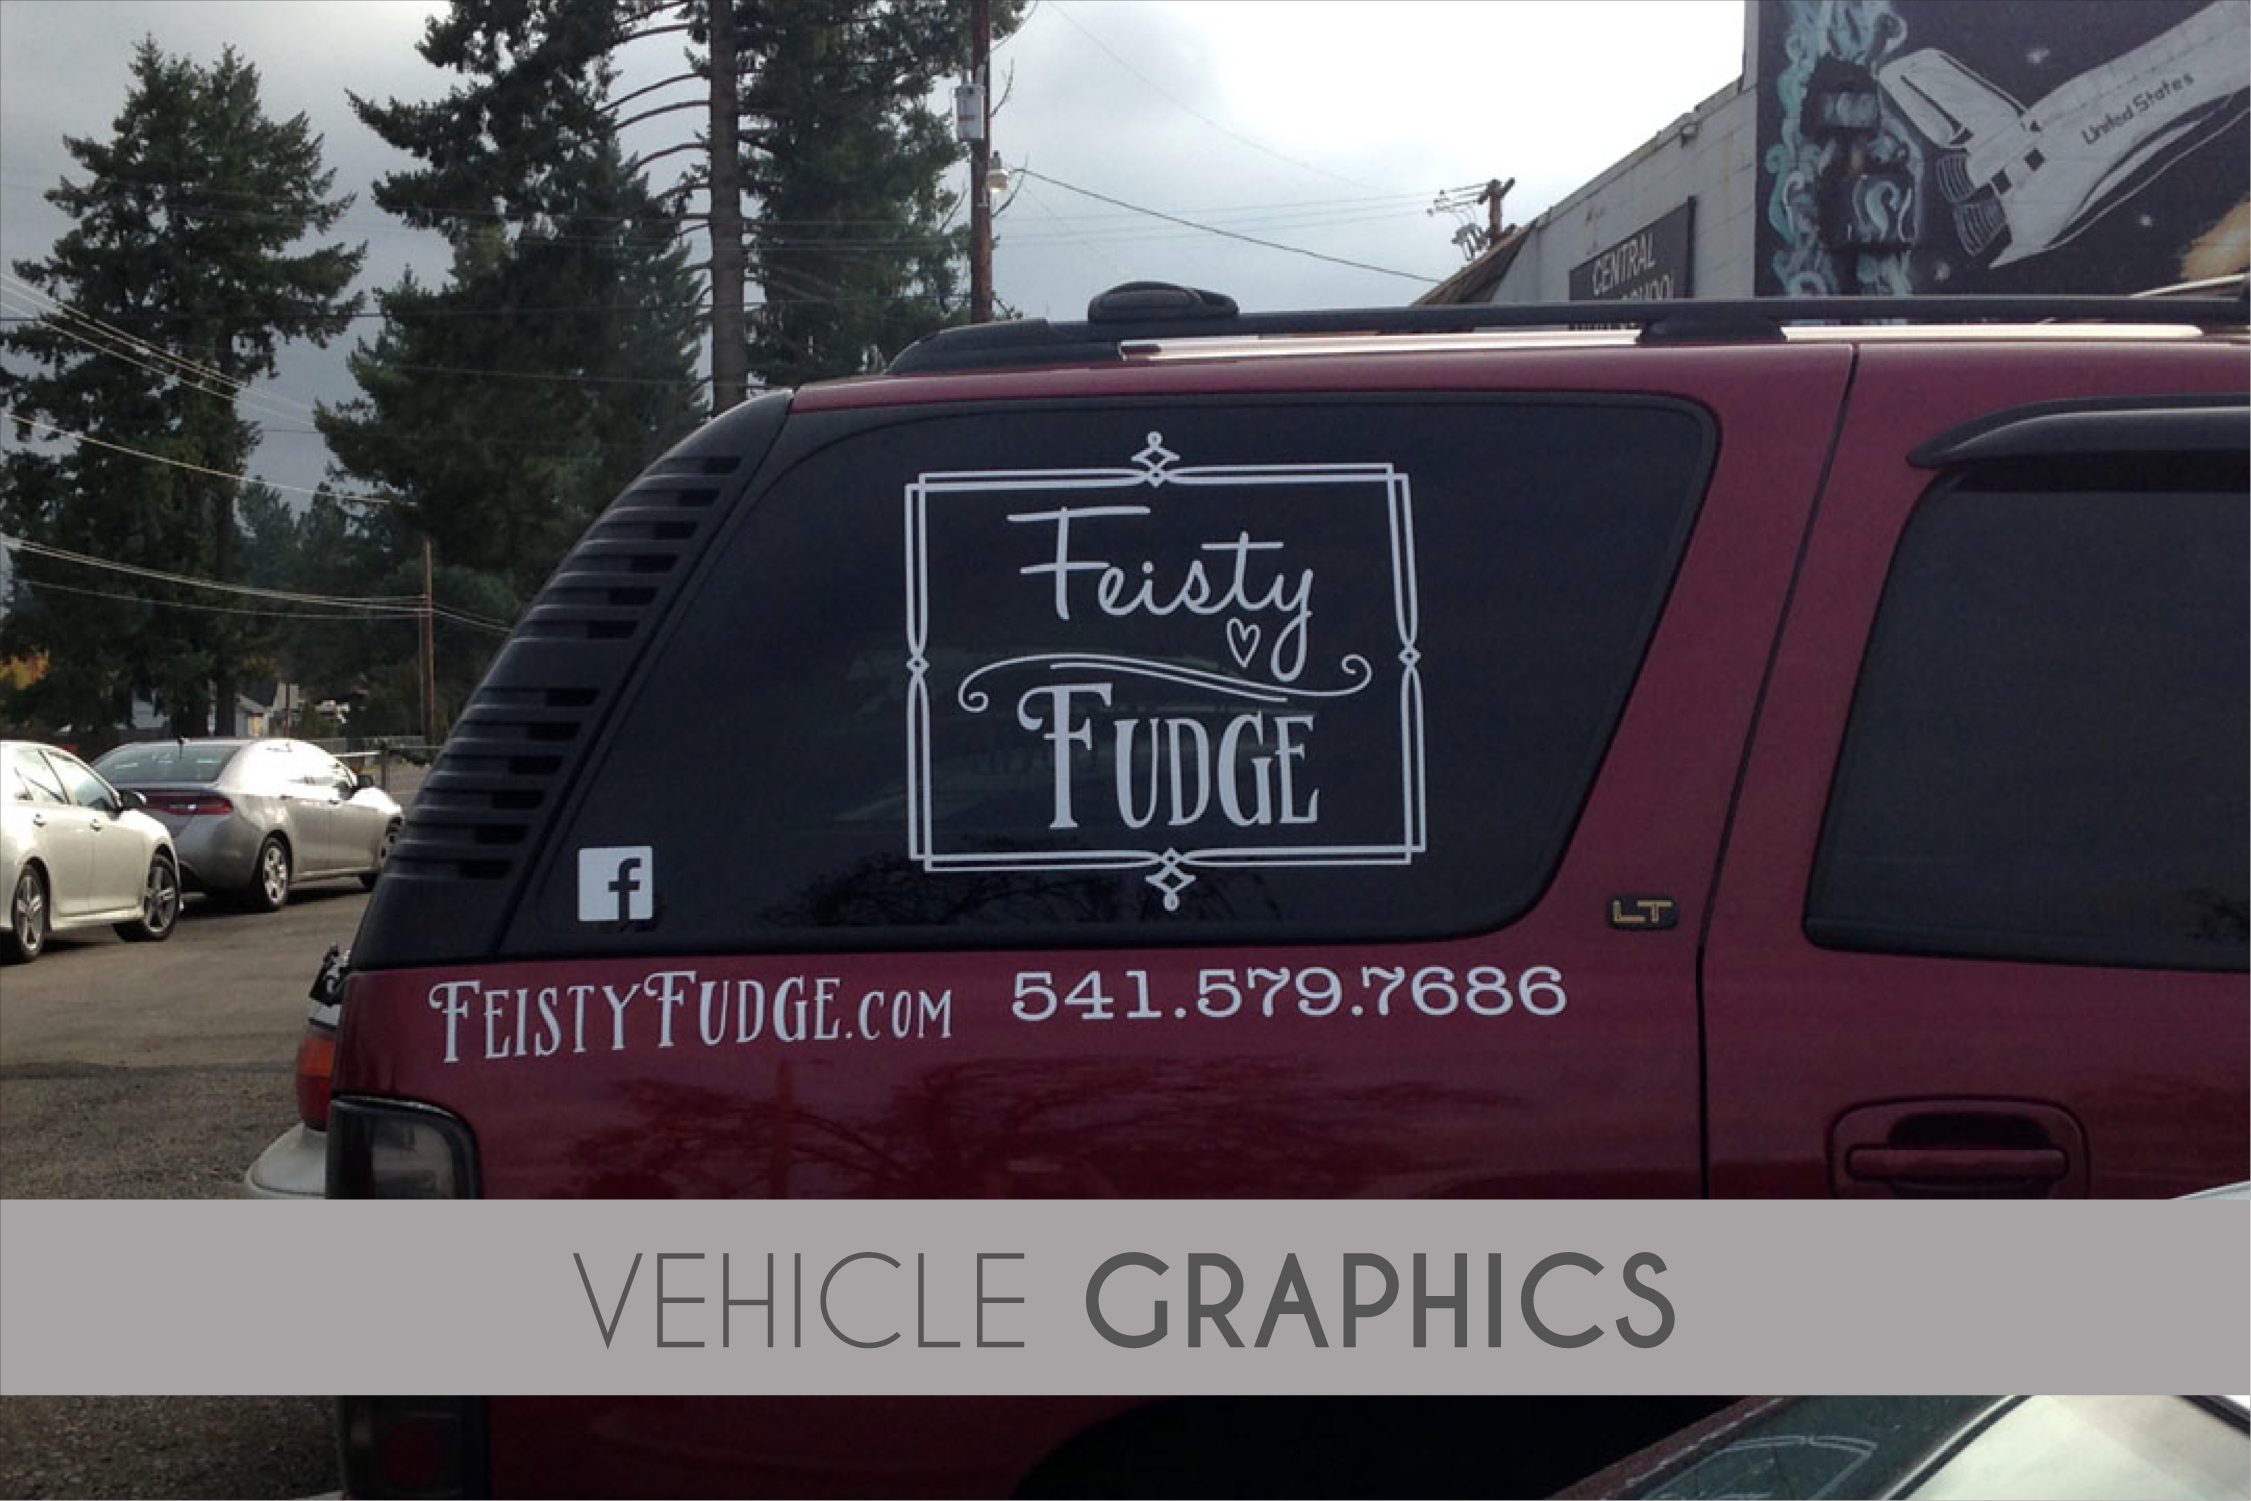 Feisty-Fudge_Vehicle-Graphics_pic-v1.png